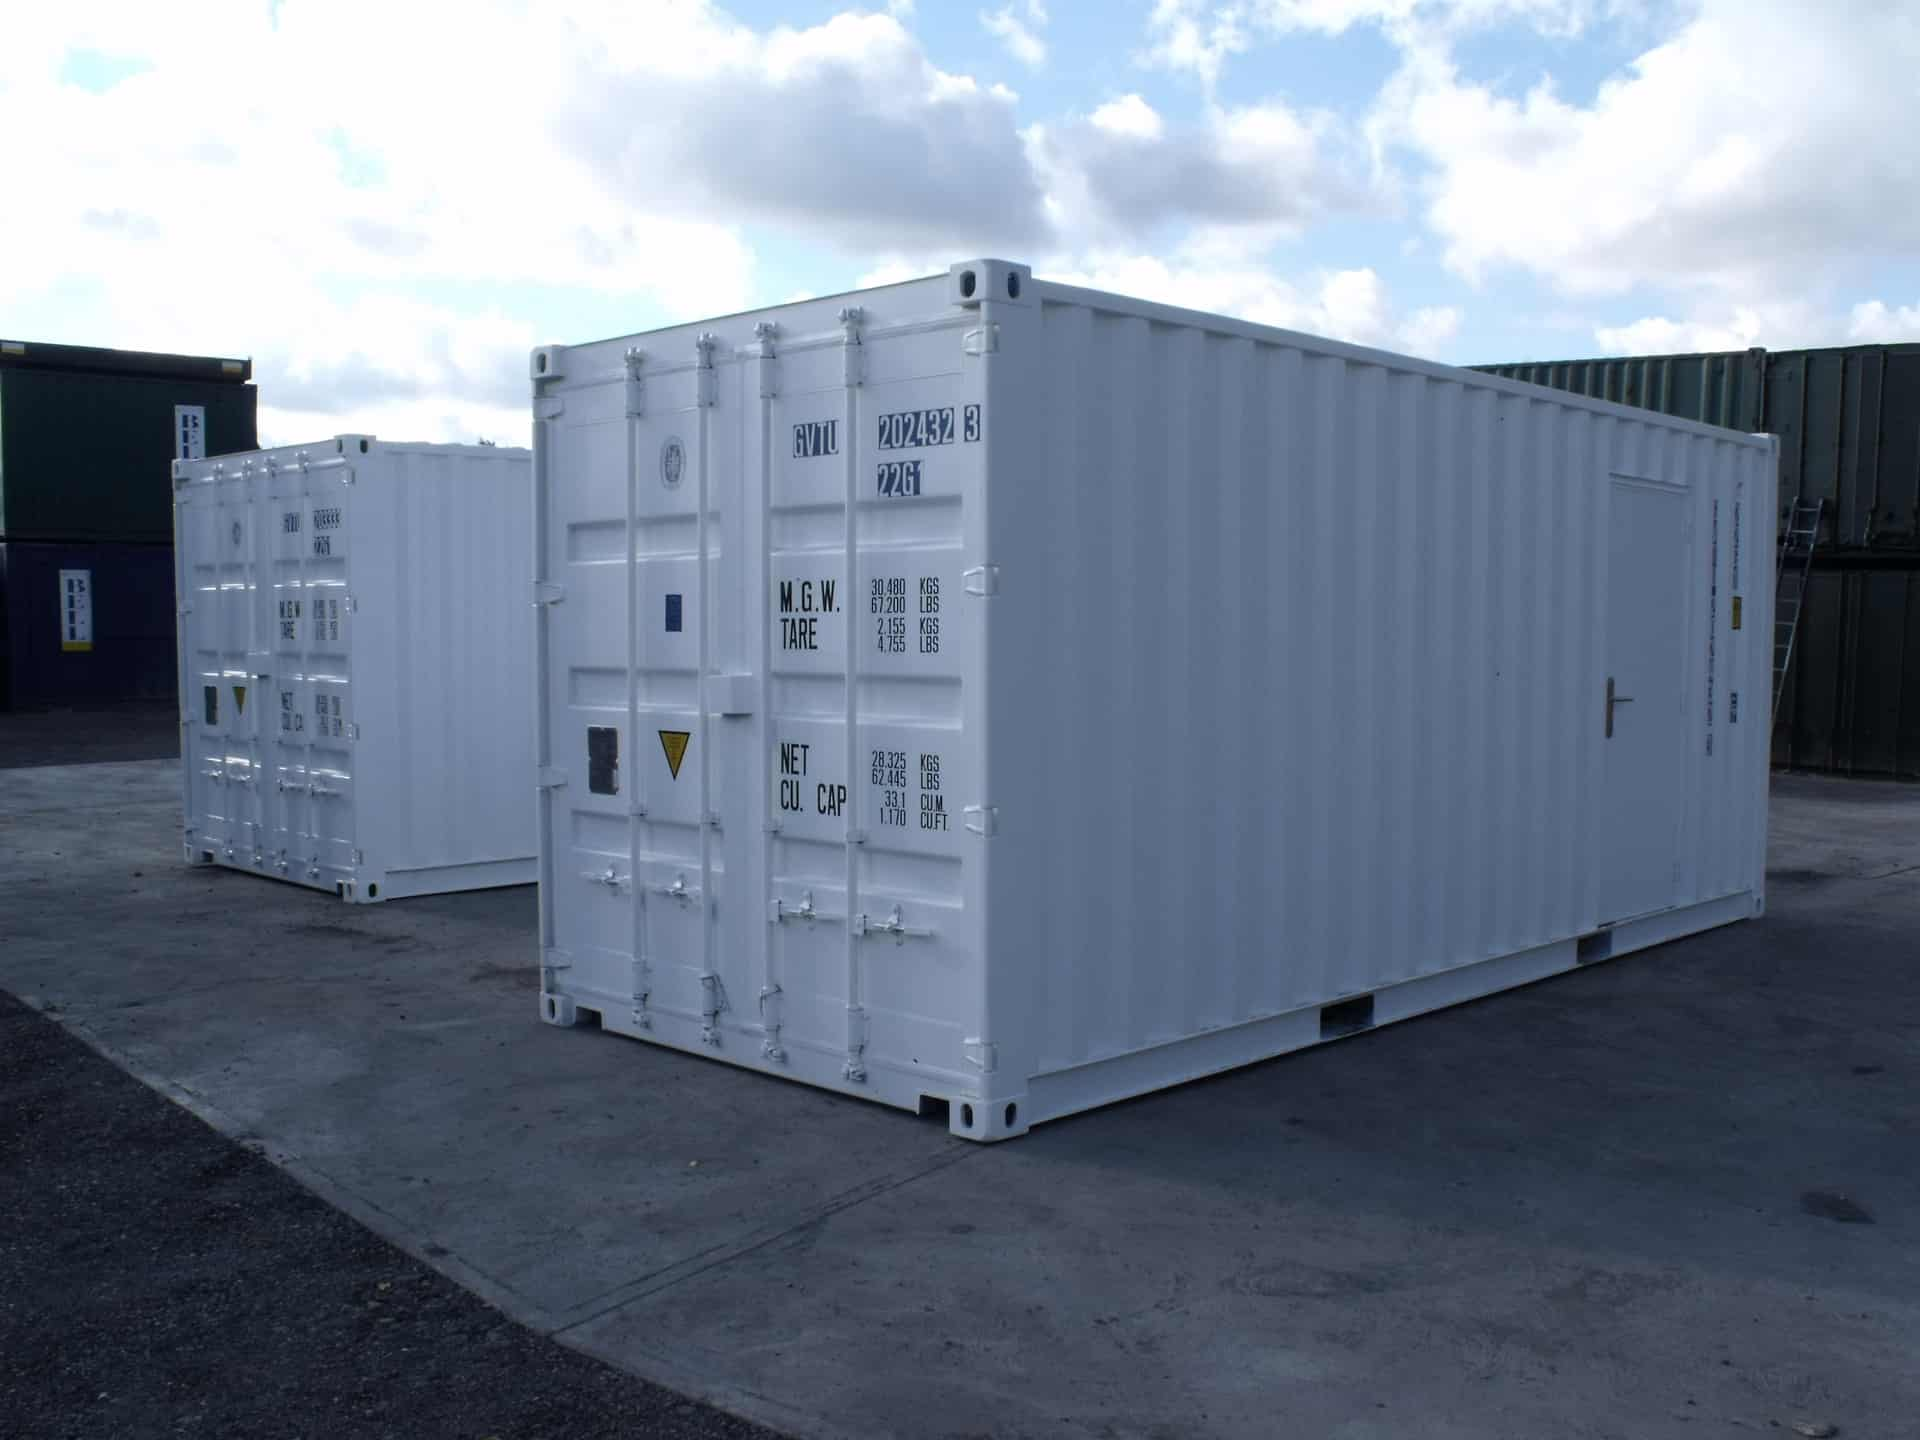 Best Kitchen Gallery: 20ft Shipping Containers For Hire And Sale Storage Containers Hire of 20ft Shipping Container on rachelxblog.com